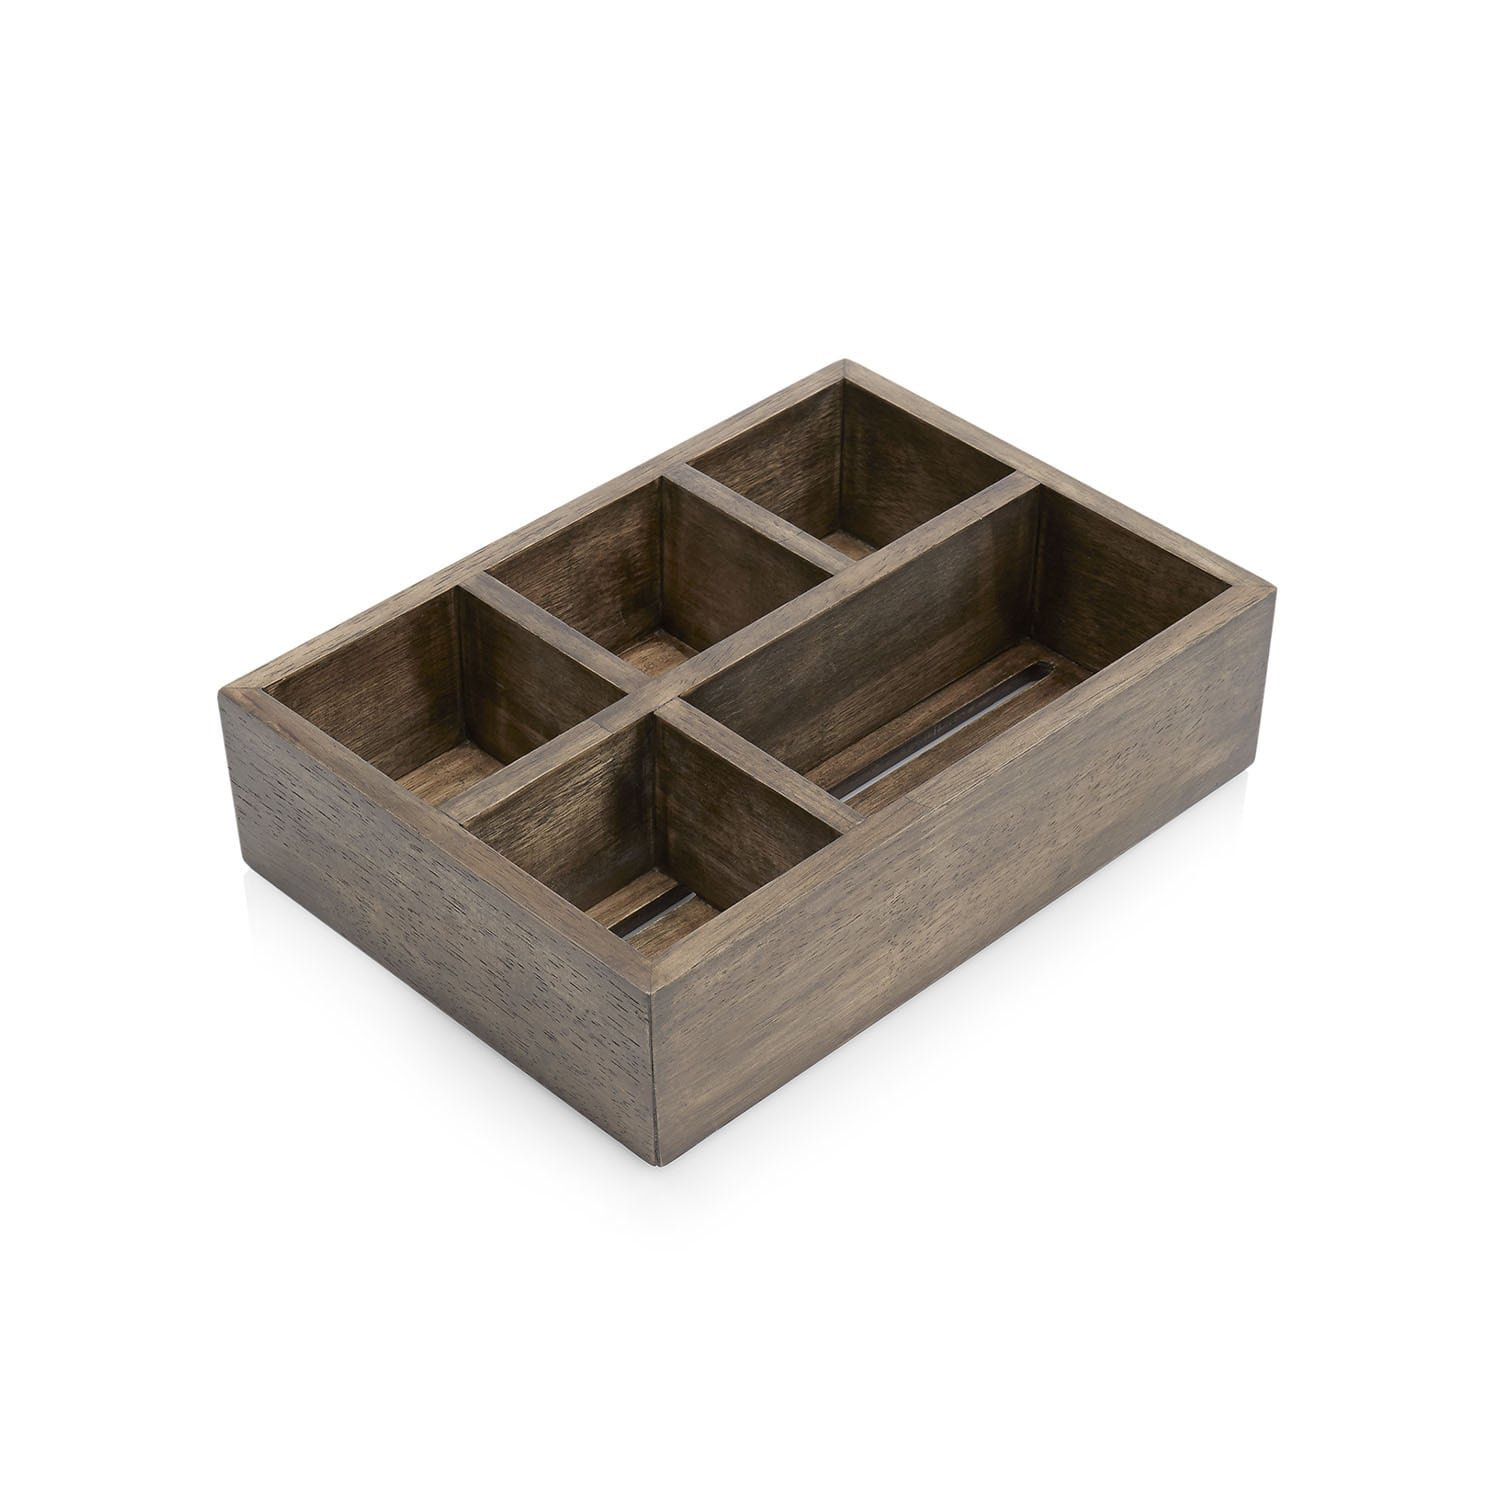 Paradigm Trends Driftwood Compartment Tray by Paradigm Trends